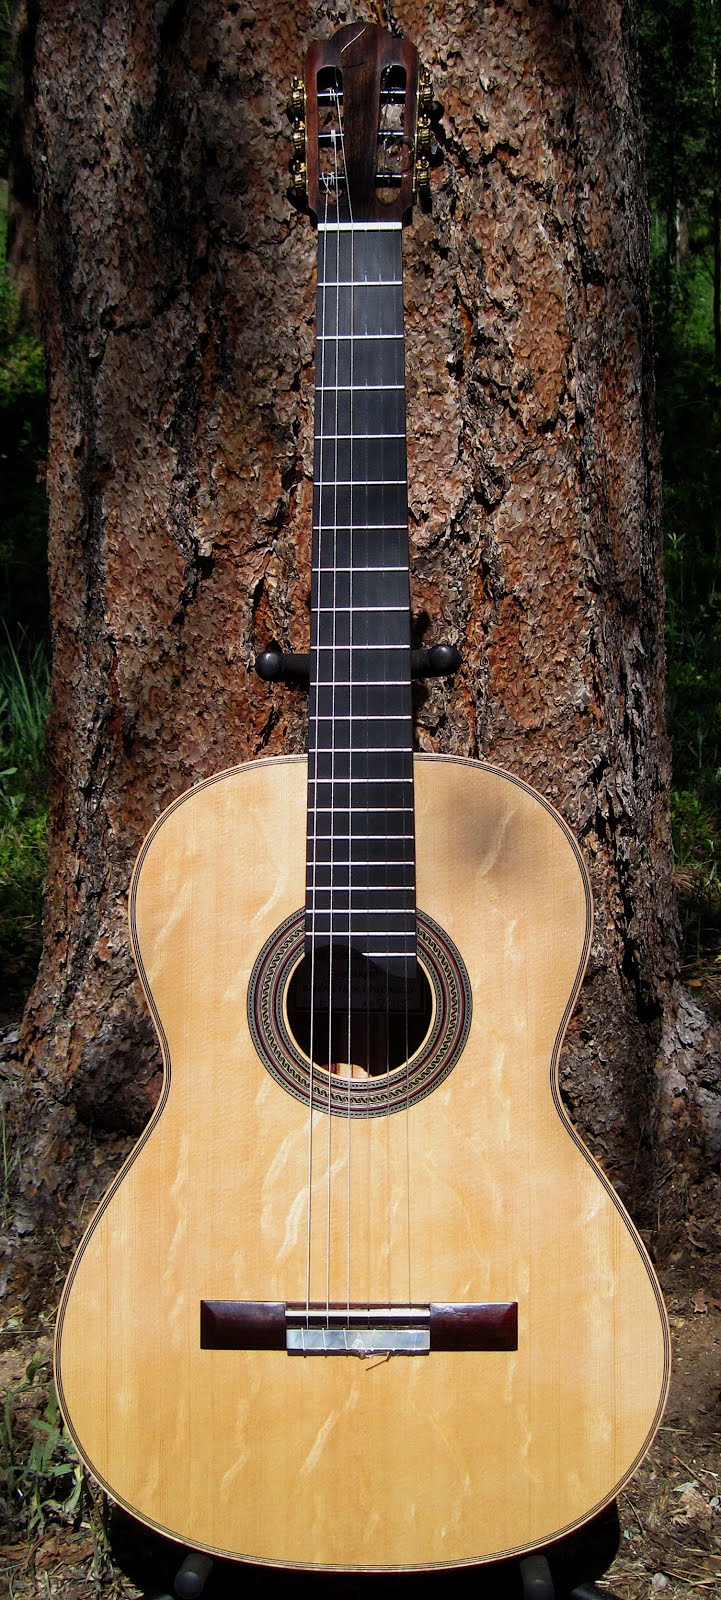 SOLD! Antonio Torres FE 19 Model, Sitka Spruce/Granadillo